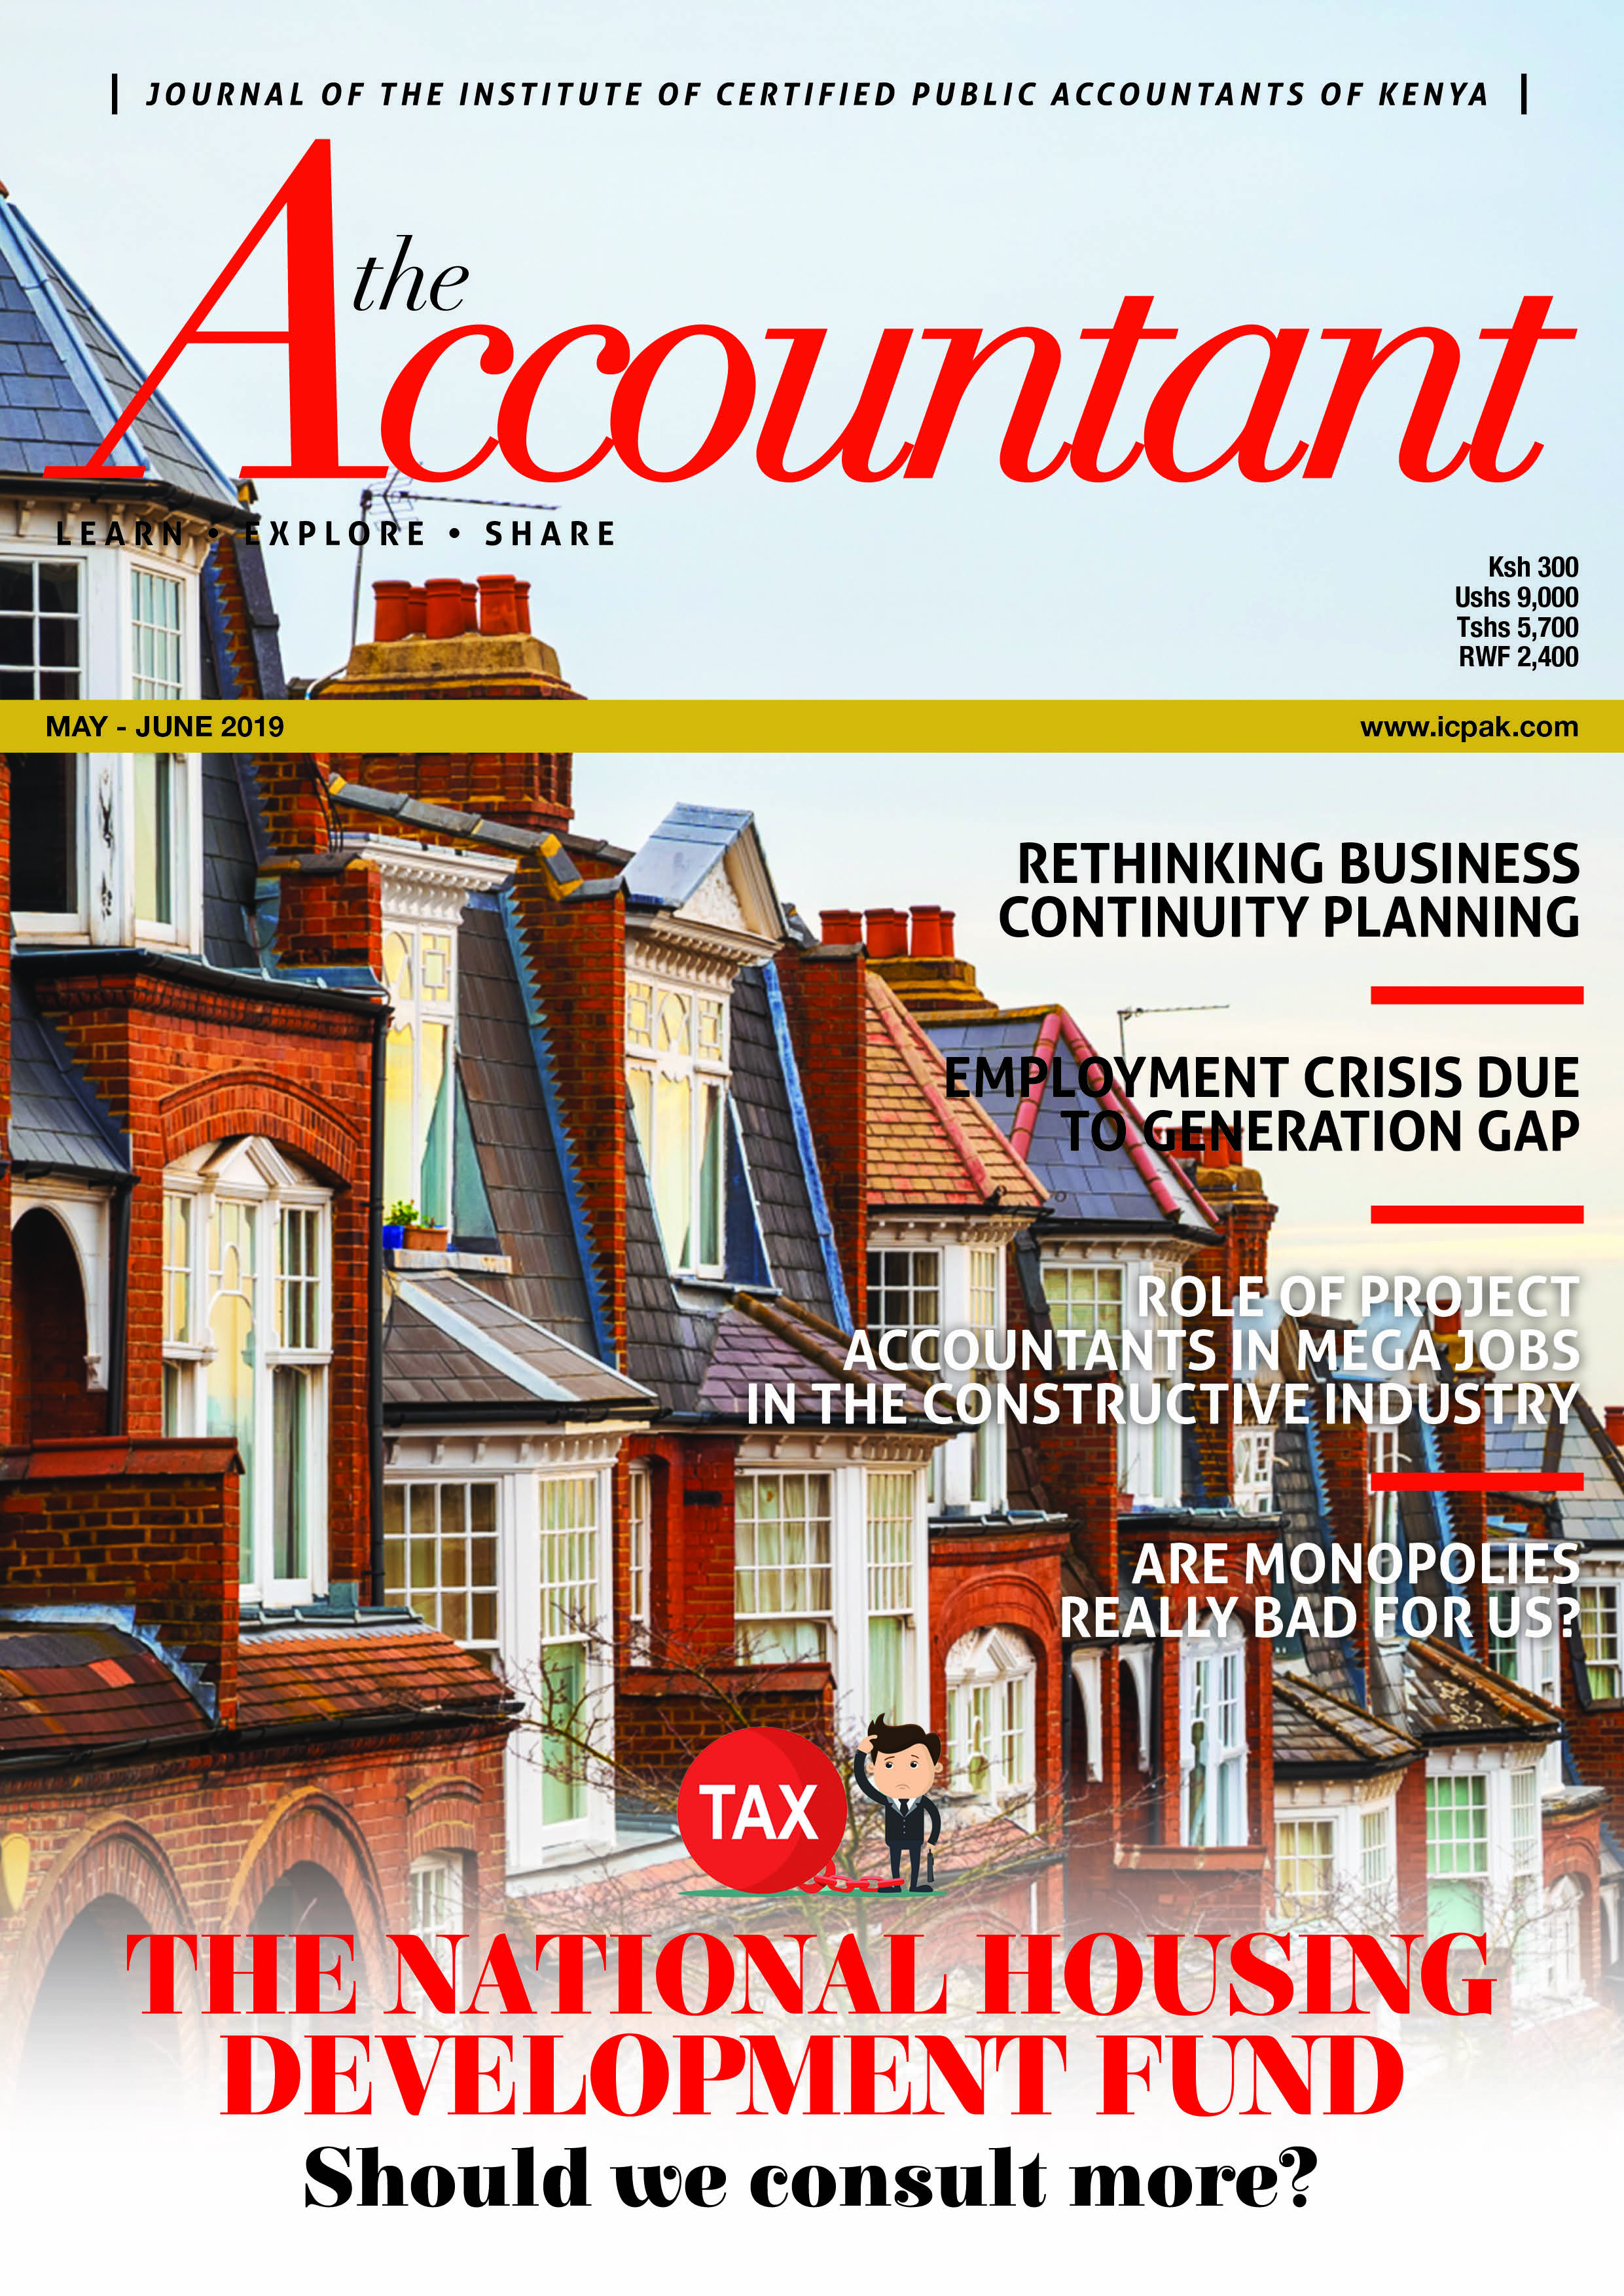 The Accountant Journal-May/June 2019 issue